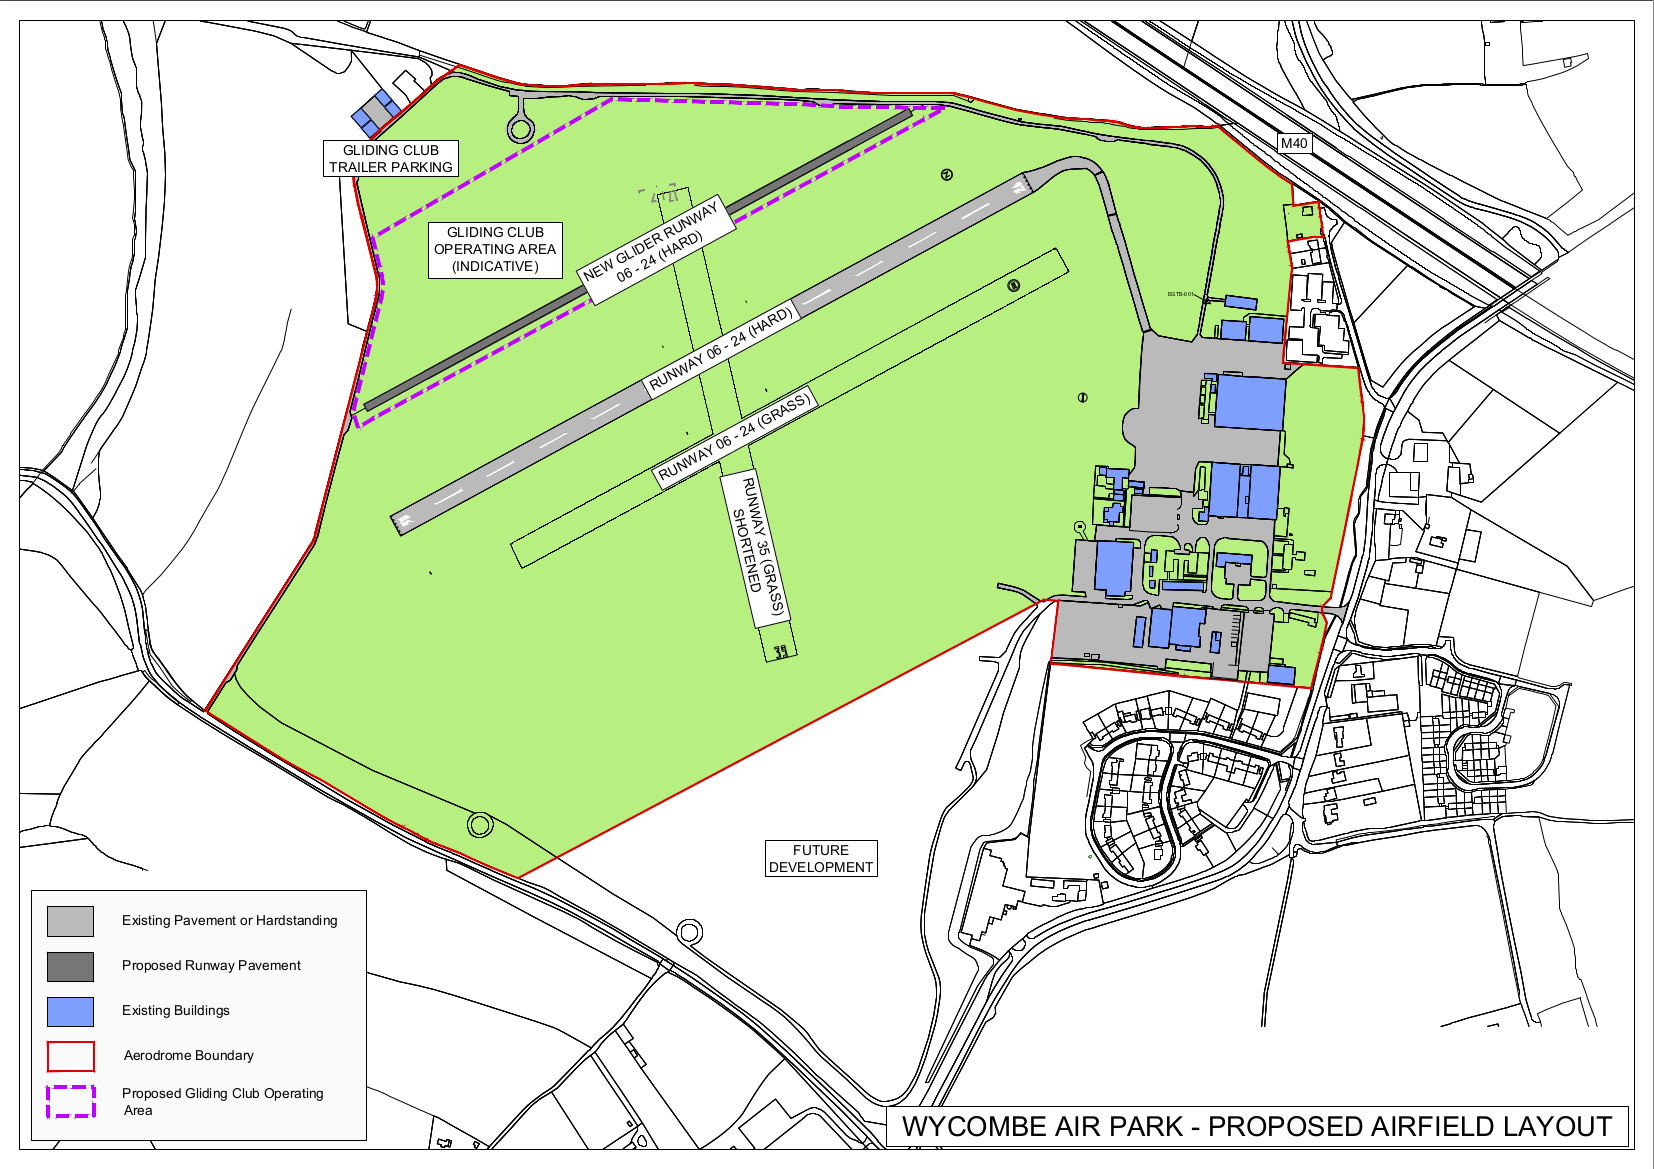 This map displays the proposed new airfield layout, including the new glider runway to the north-west of the existing runway and the gliding club operating area north-west of the new runway.